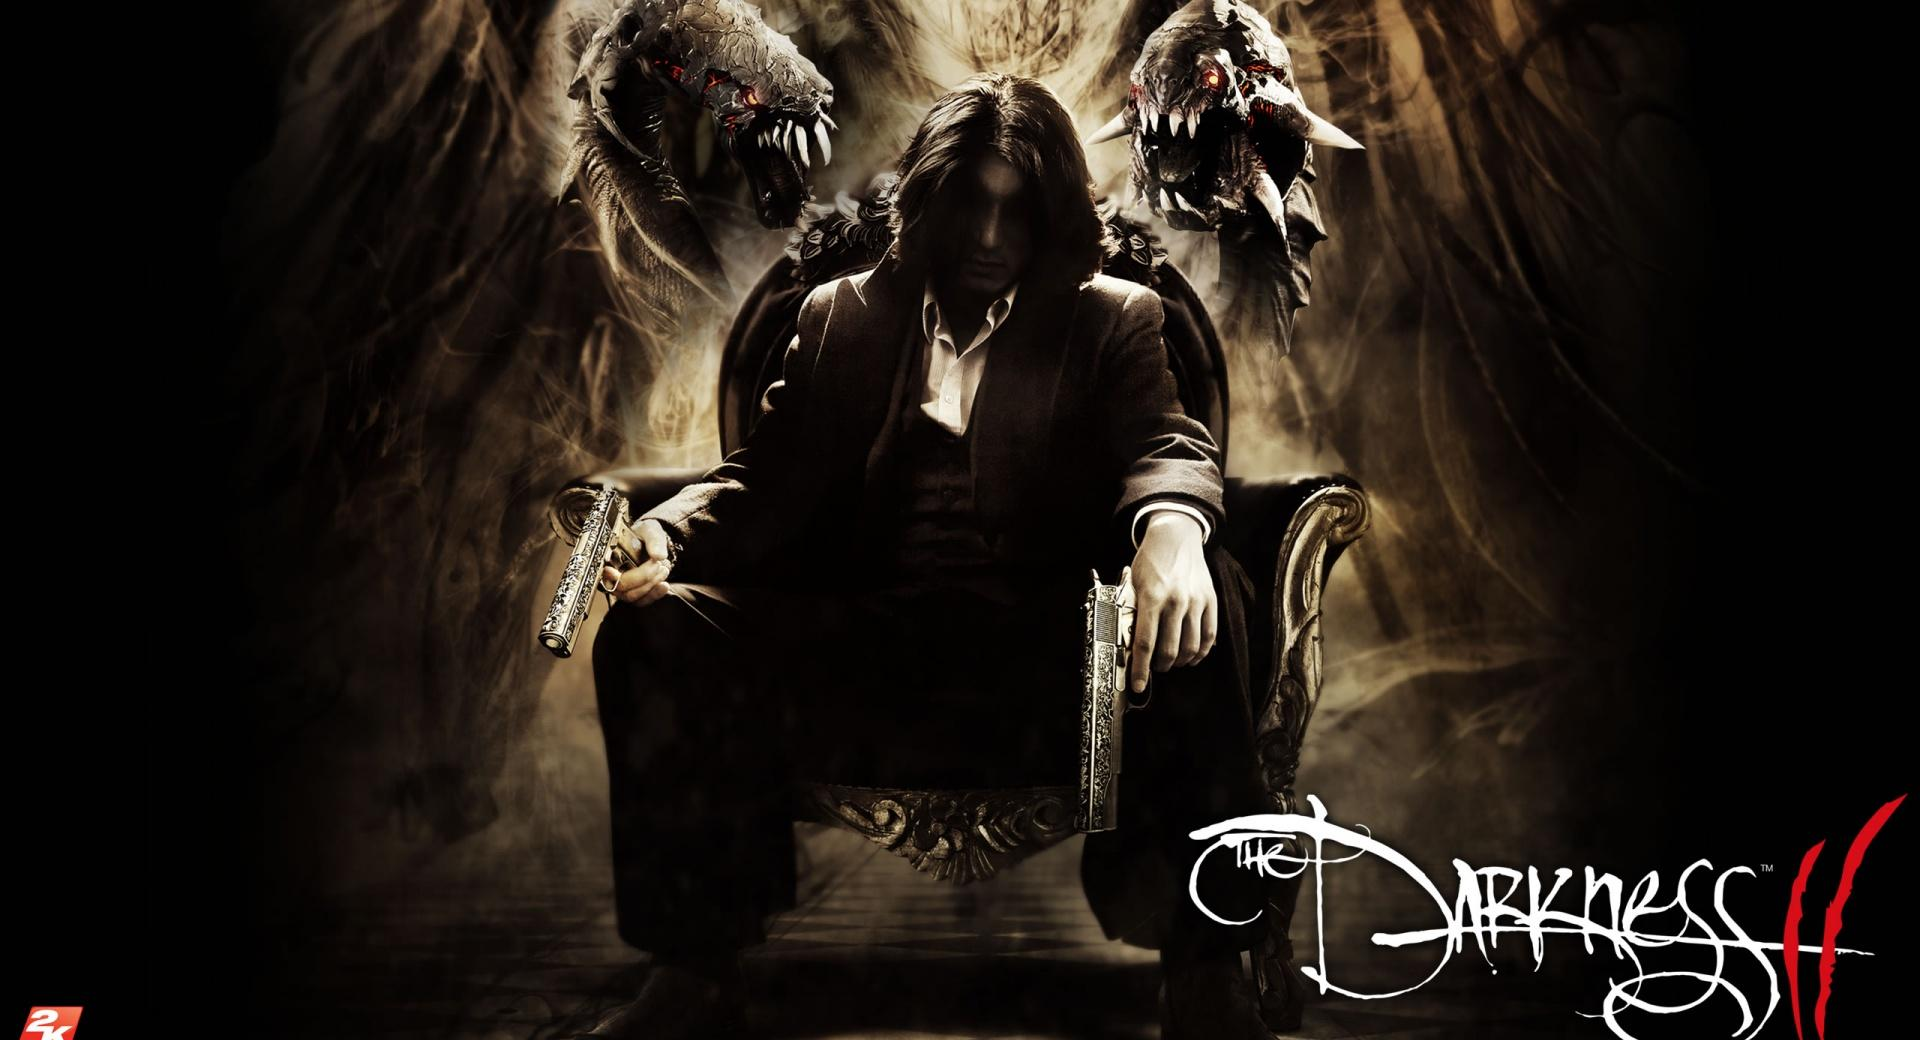 The Darkness 2 at 1280 x 960 size wallpapers HD quality